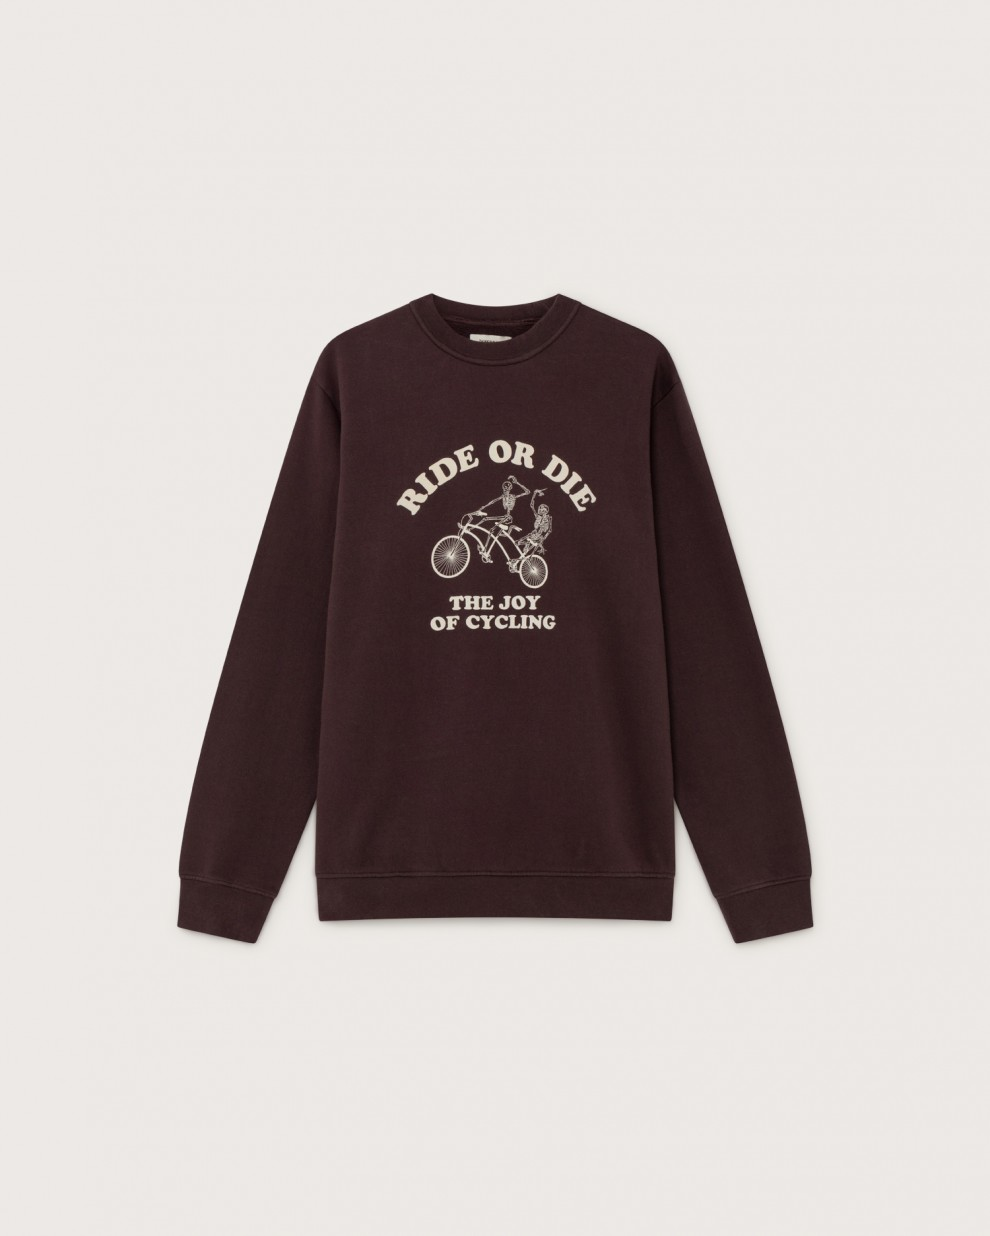 JOY OF CYCLING SWEATSHIRT